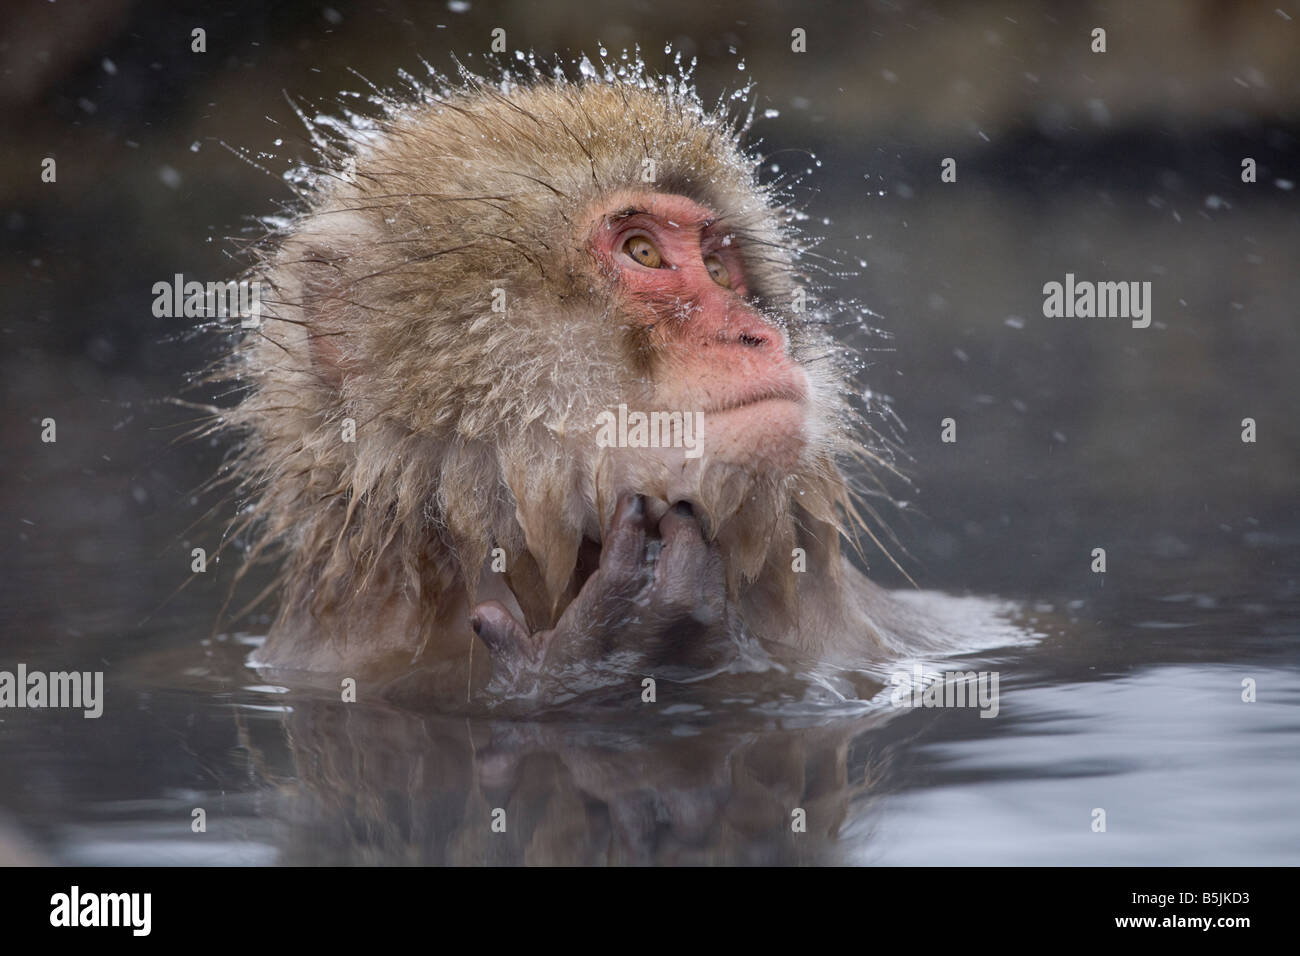 Jigokudani Monkey en neige Monkey Park National de Nagano au Japon Photo Stock